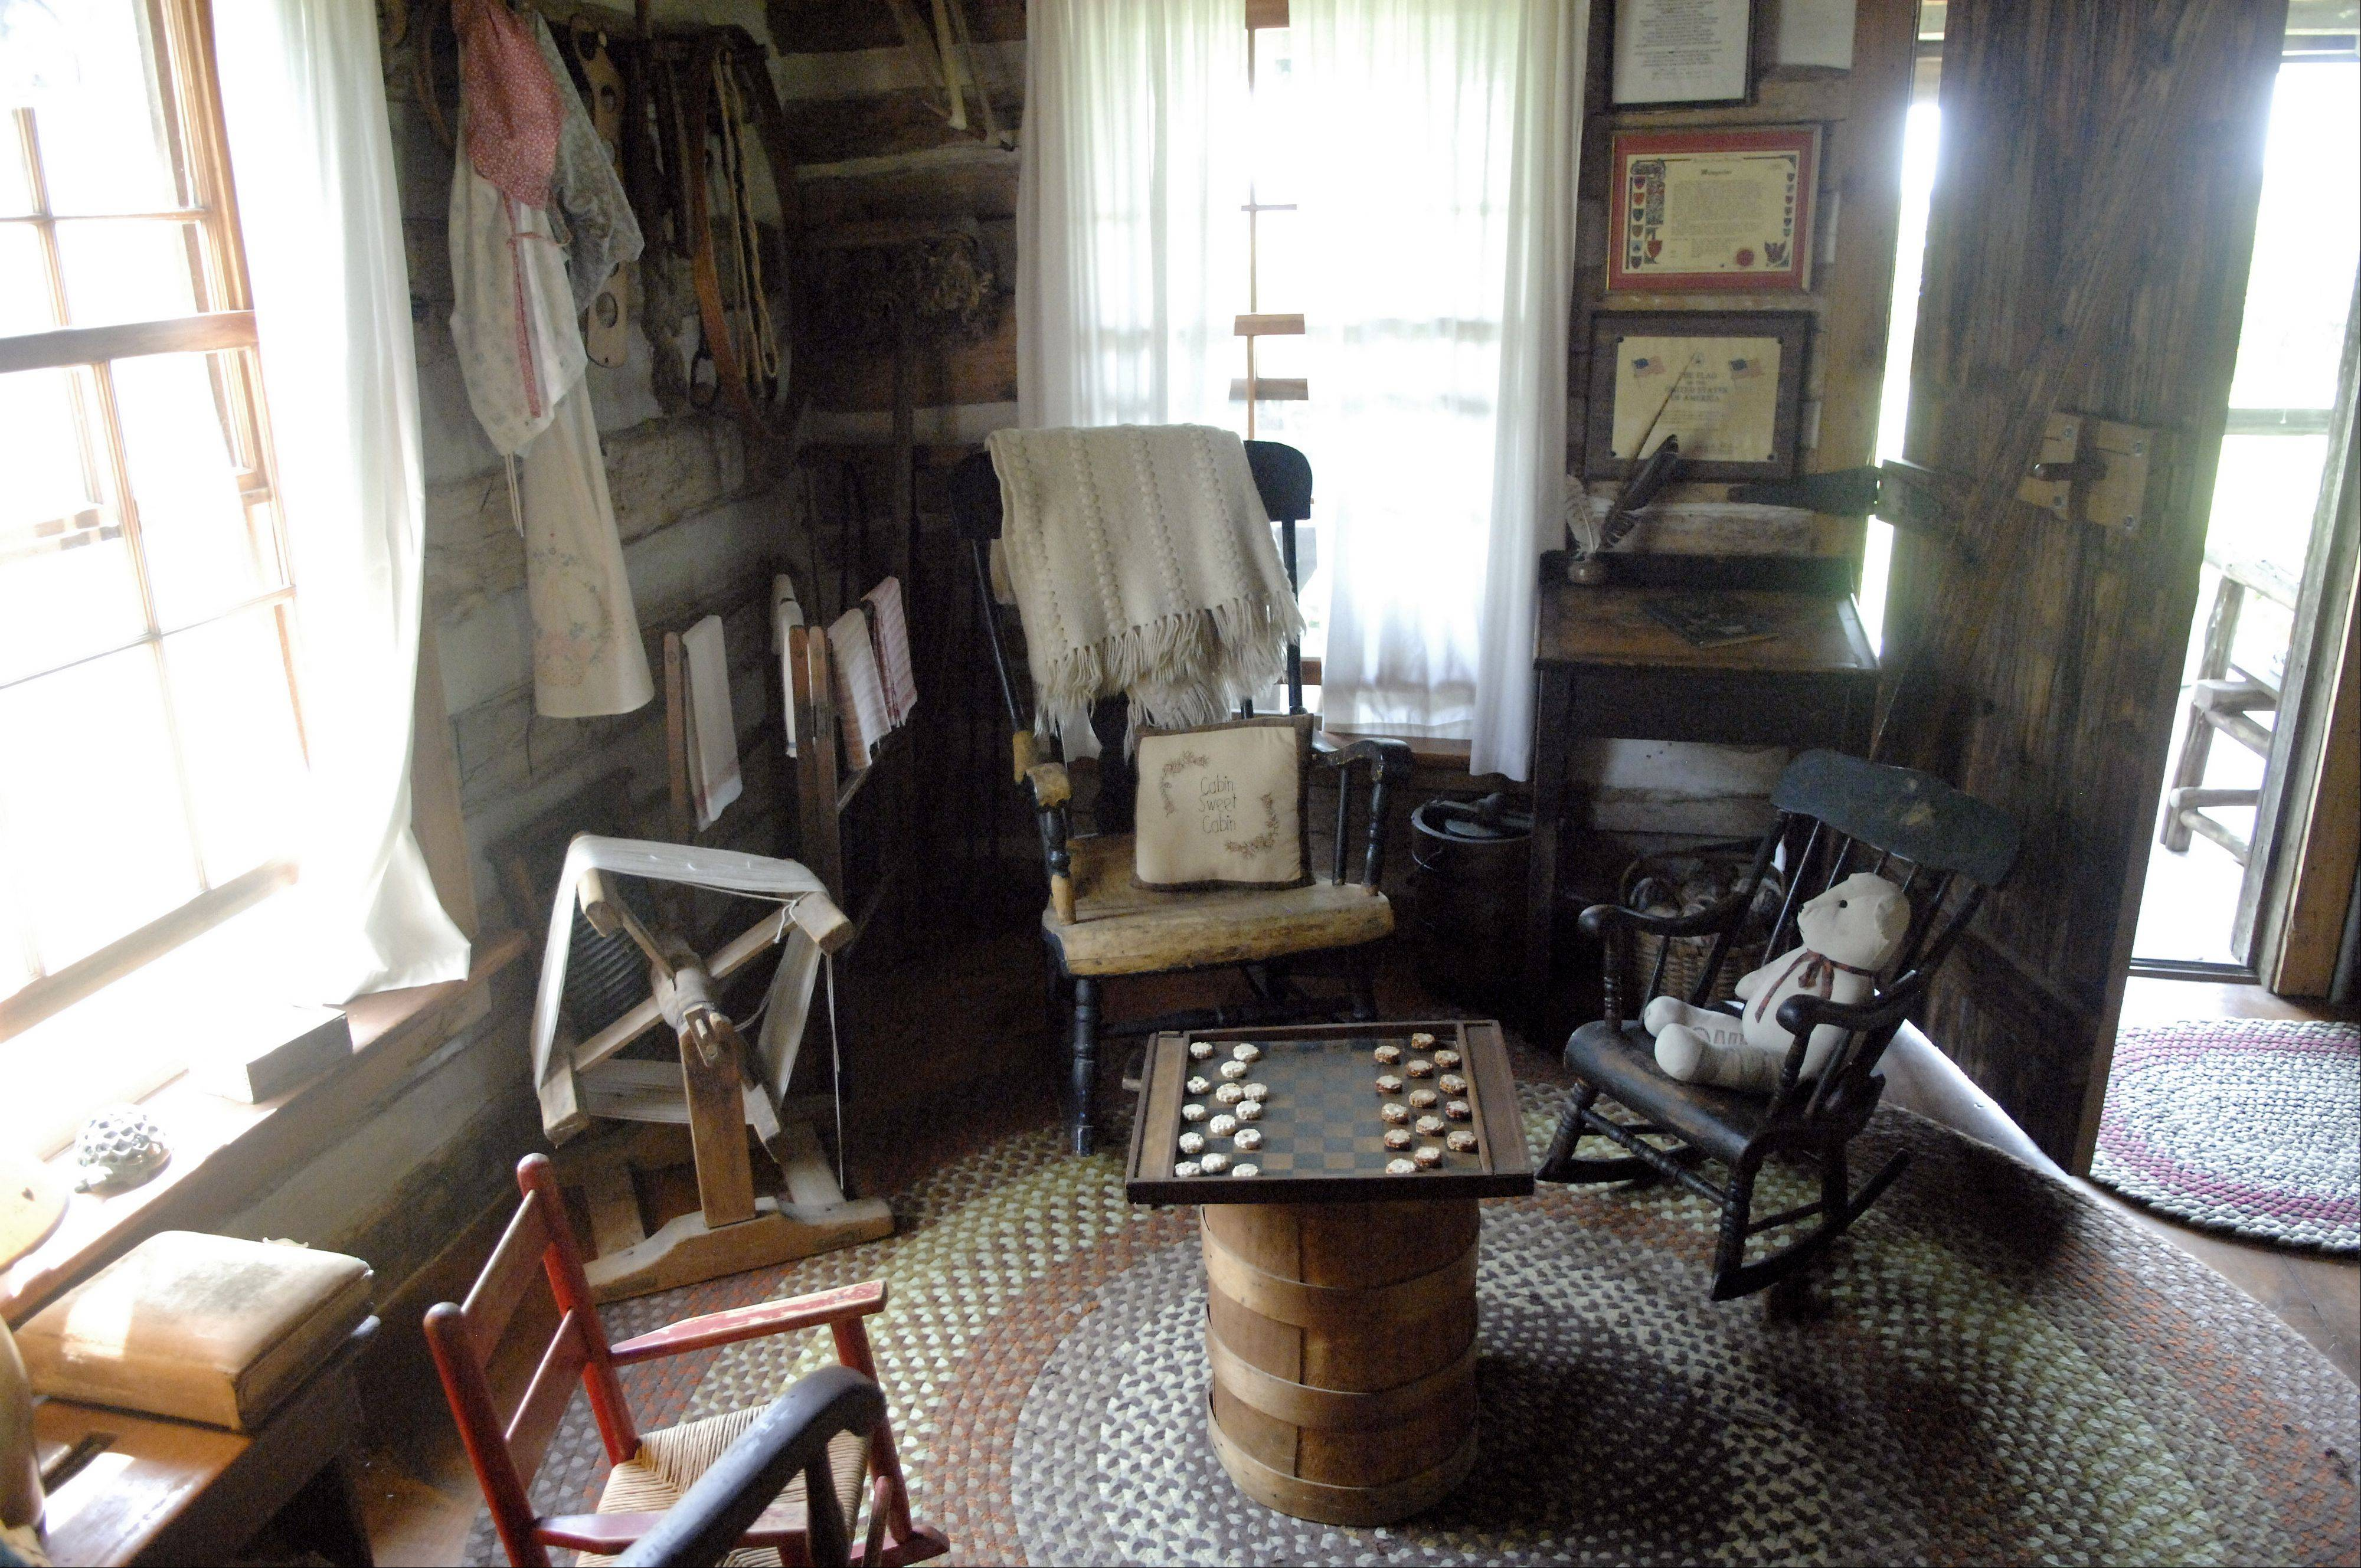 Rockers, a game of checkers and a yarn winder are just the beginning of artifacts in the Whites' log house near Batavia.